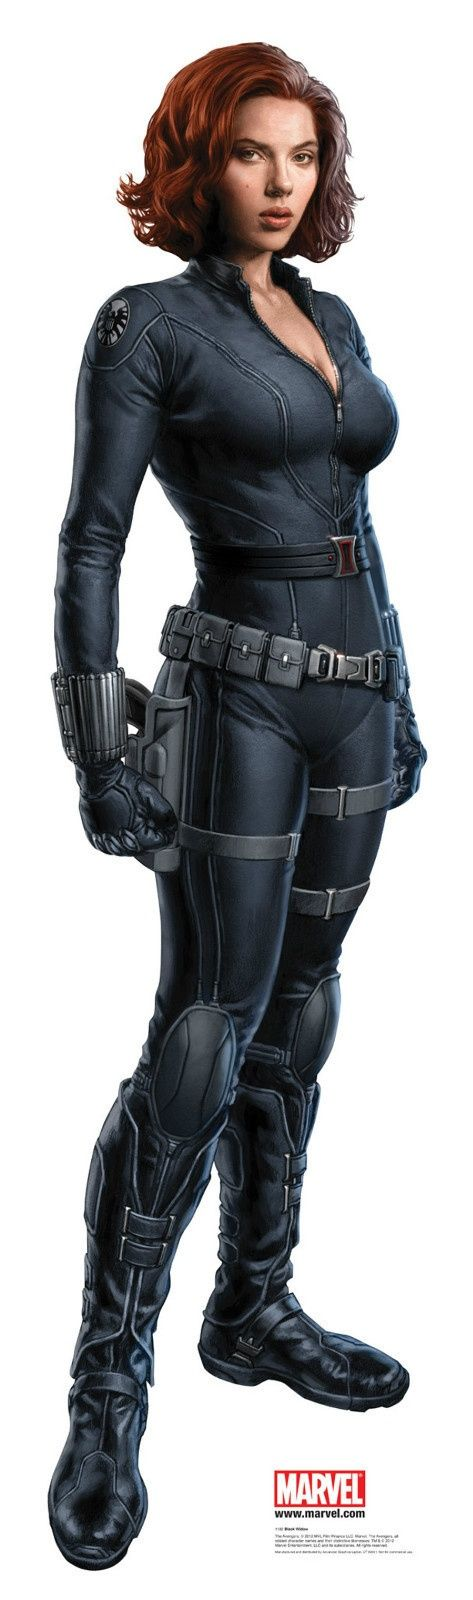 Scarlett Johansson: Black Widow -- awesome halloween costume... may need to work out a little though... lol!!!